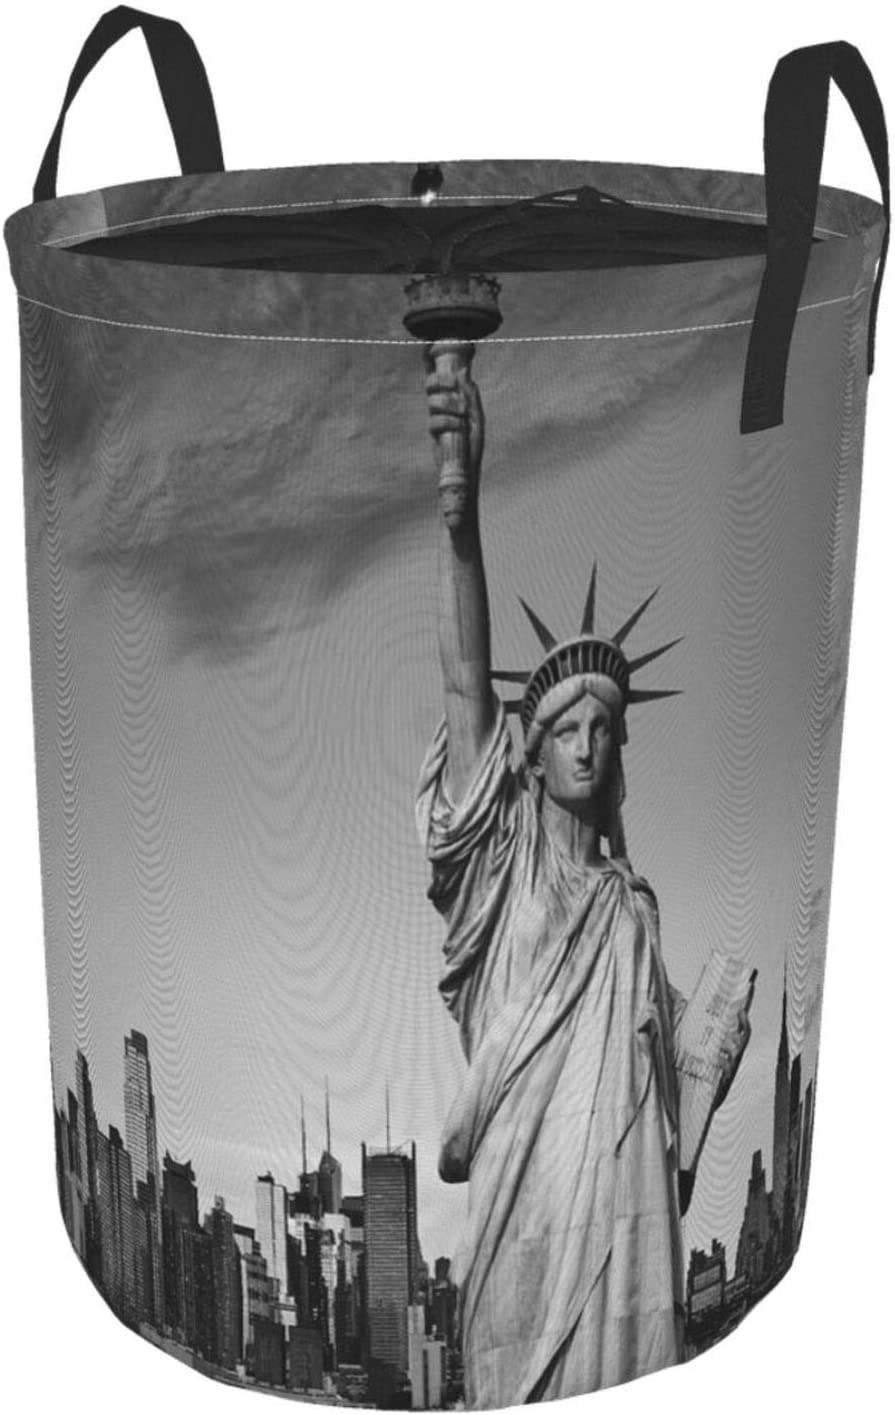 Janrely Large Round Storage Import Basket Handles Libert Statue Ranking TOP12 with of